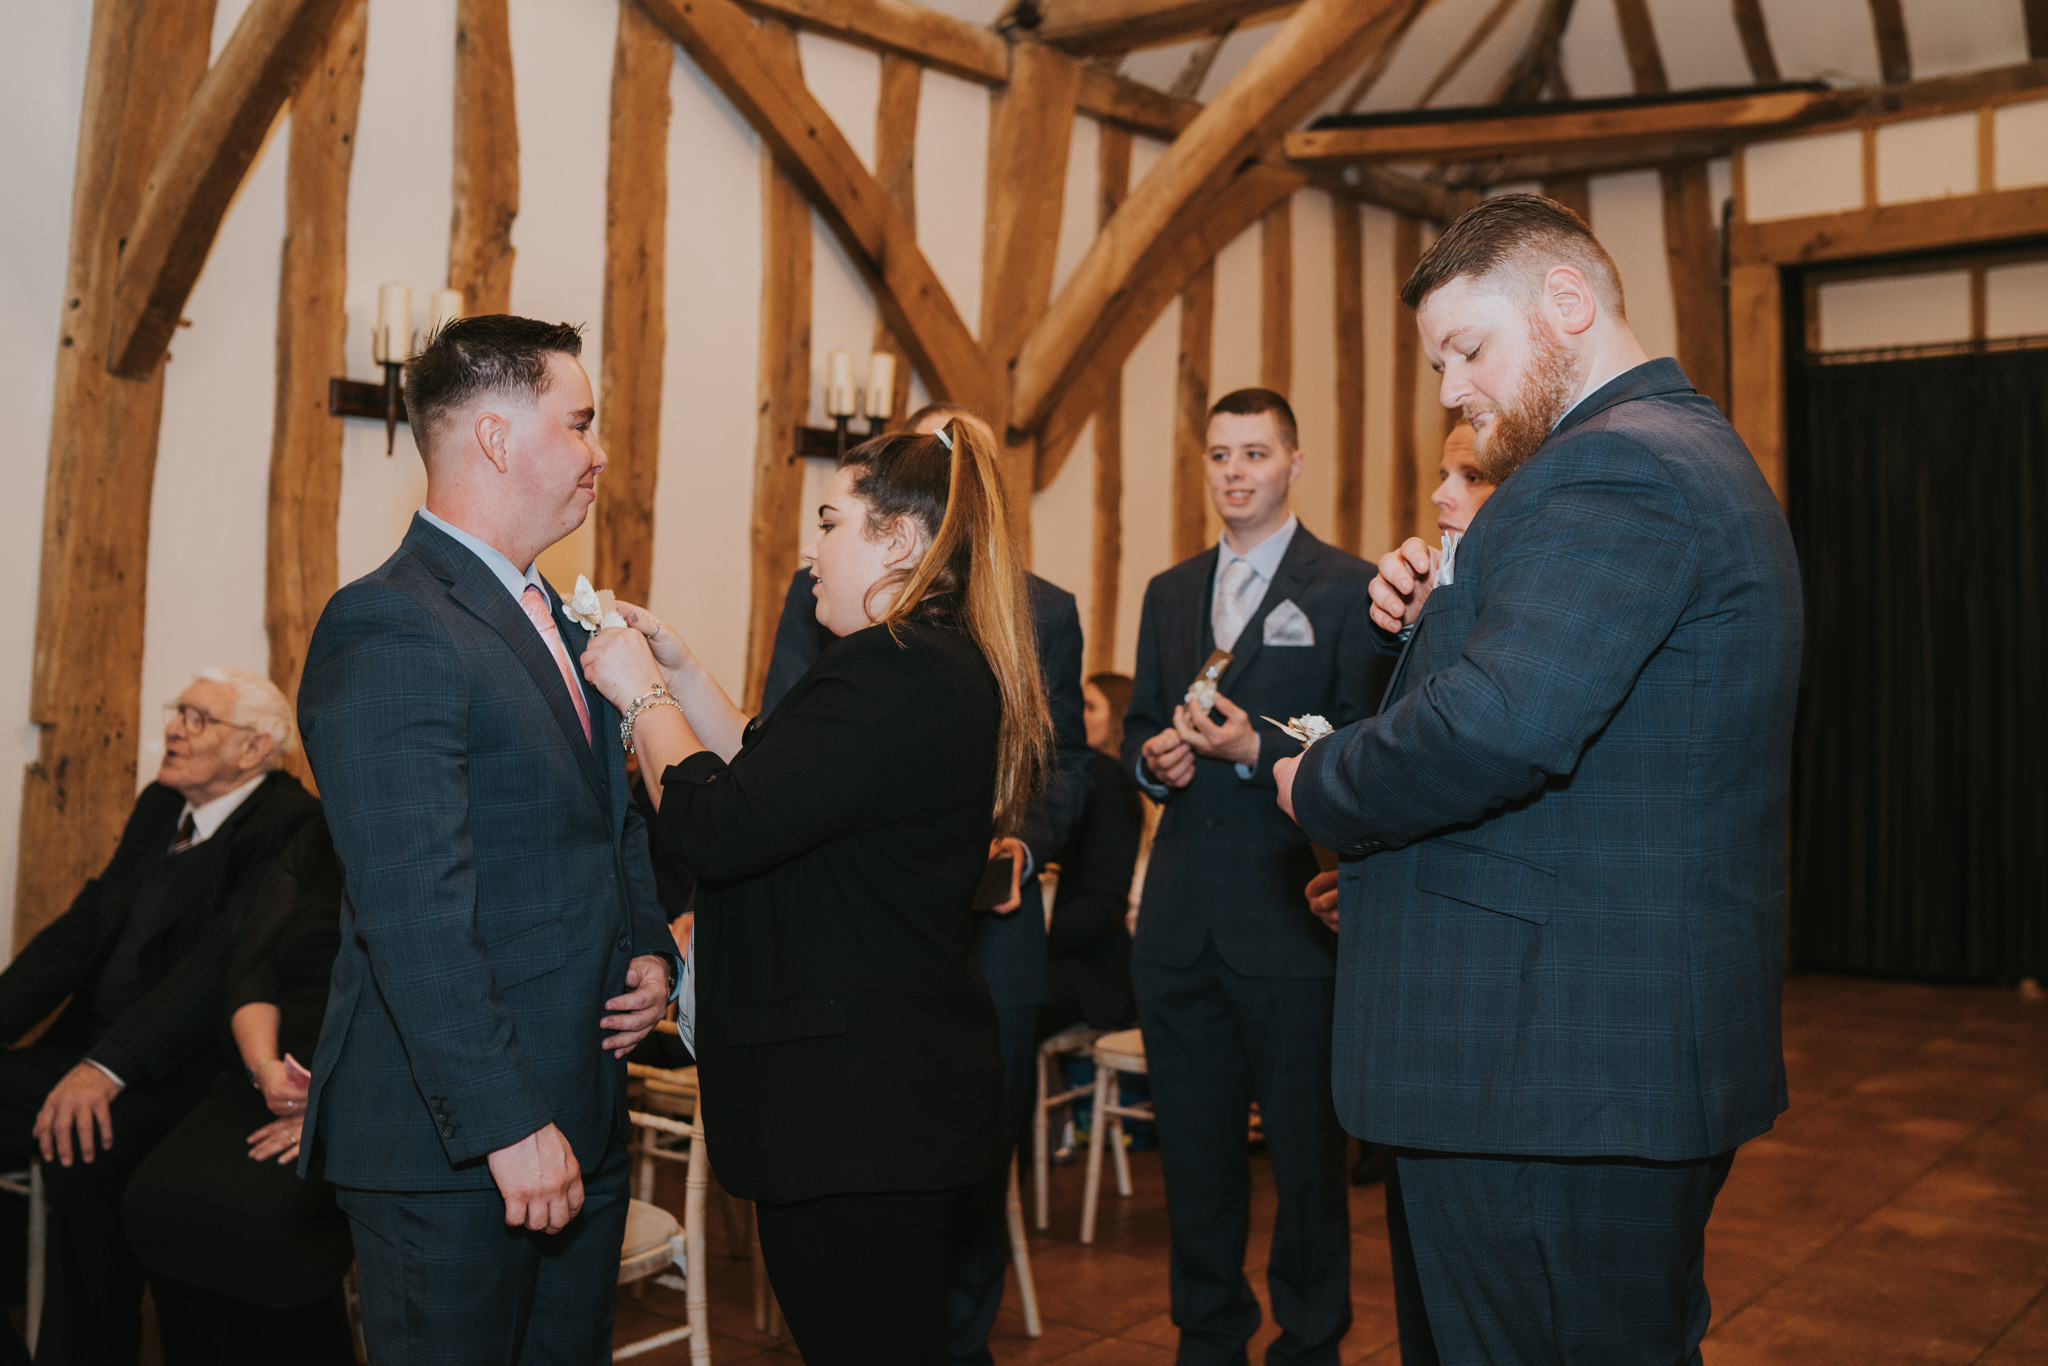 rhia-james-rustic-crabbs-barn-vintage-50s-retro-wedding-grace-elizabeth-colchester-essex-alternative-relaxed-wedding-family-photography-devon-suffolk-norfolk-essex (61 of 138).jpg